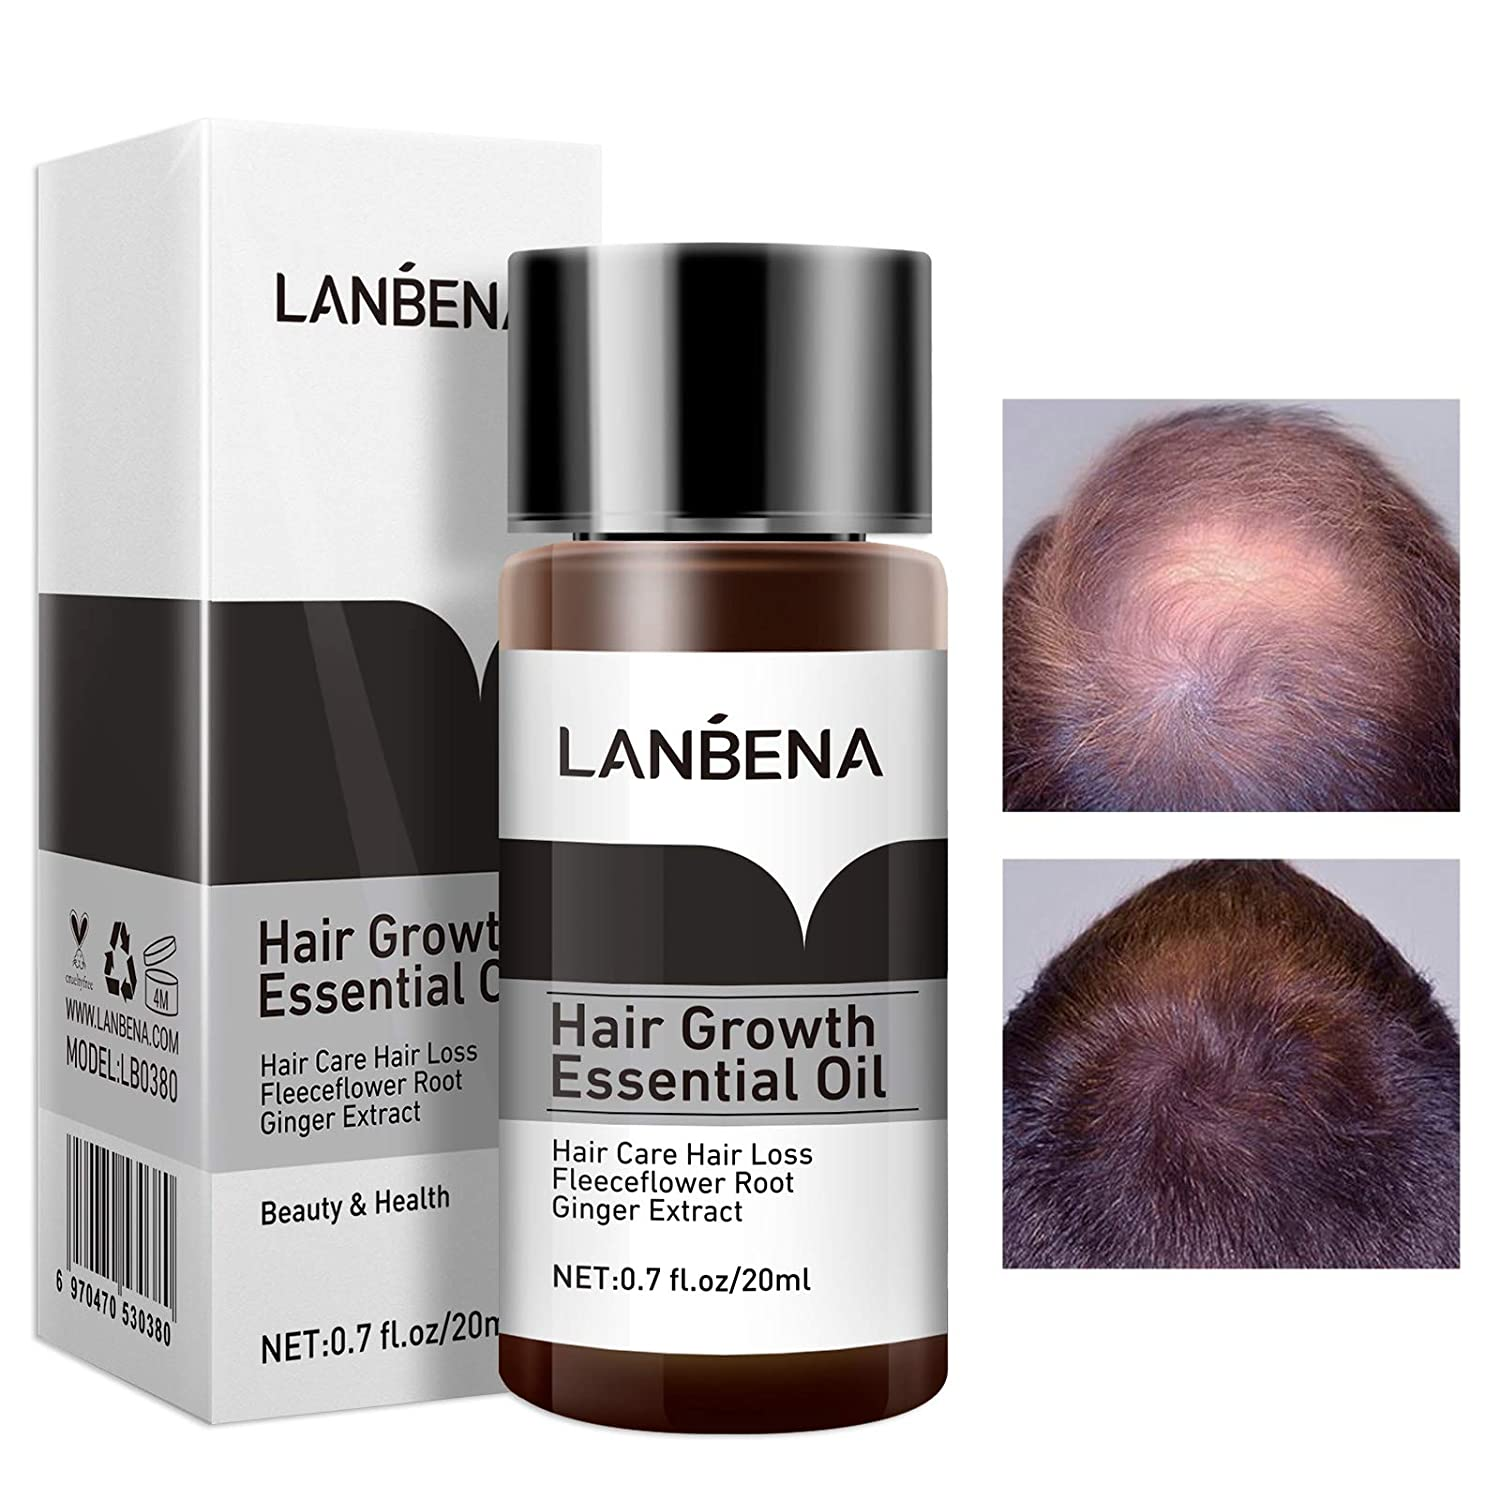 Castor oil organic and authentic castor oil processed the traditional jamaican way stimulates hair growth … Buy Lanbena Hair Growth Essential Spray Price In Bangladesh Cloud Shop Bd Cloudshopbd Com At Lowest Price Cloudshopbd Com